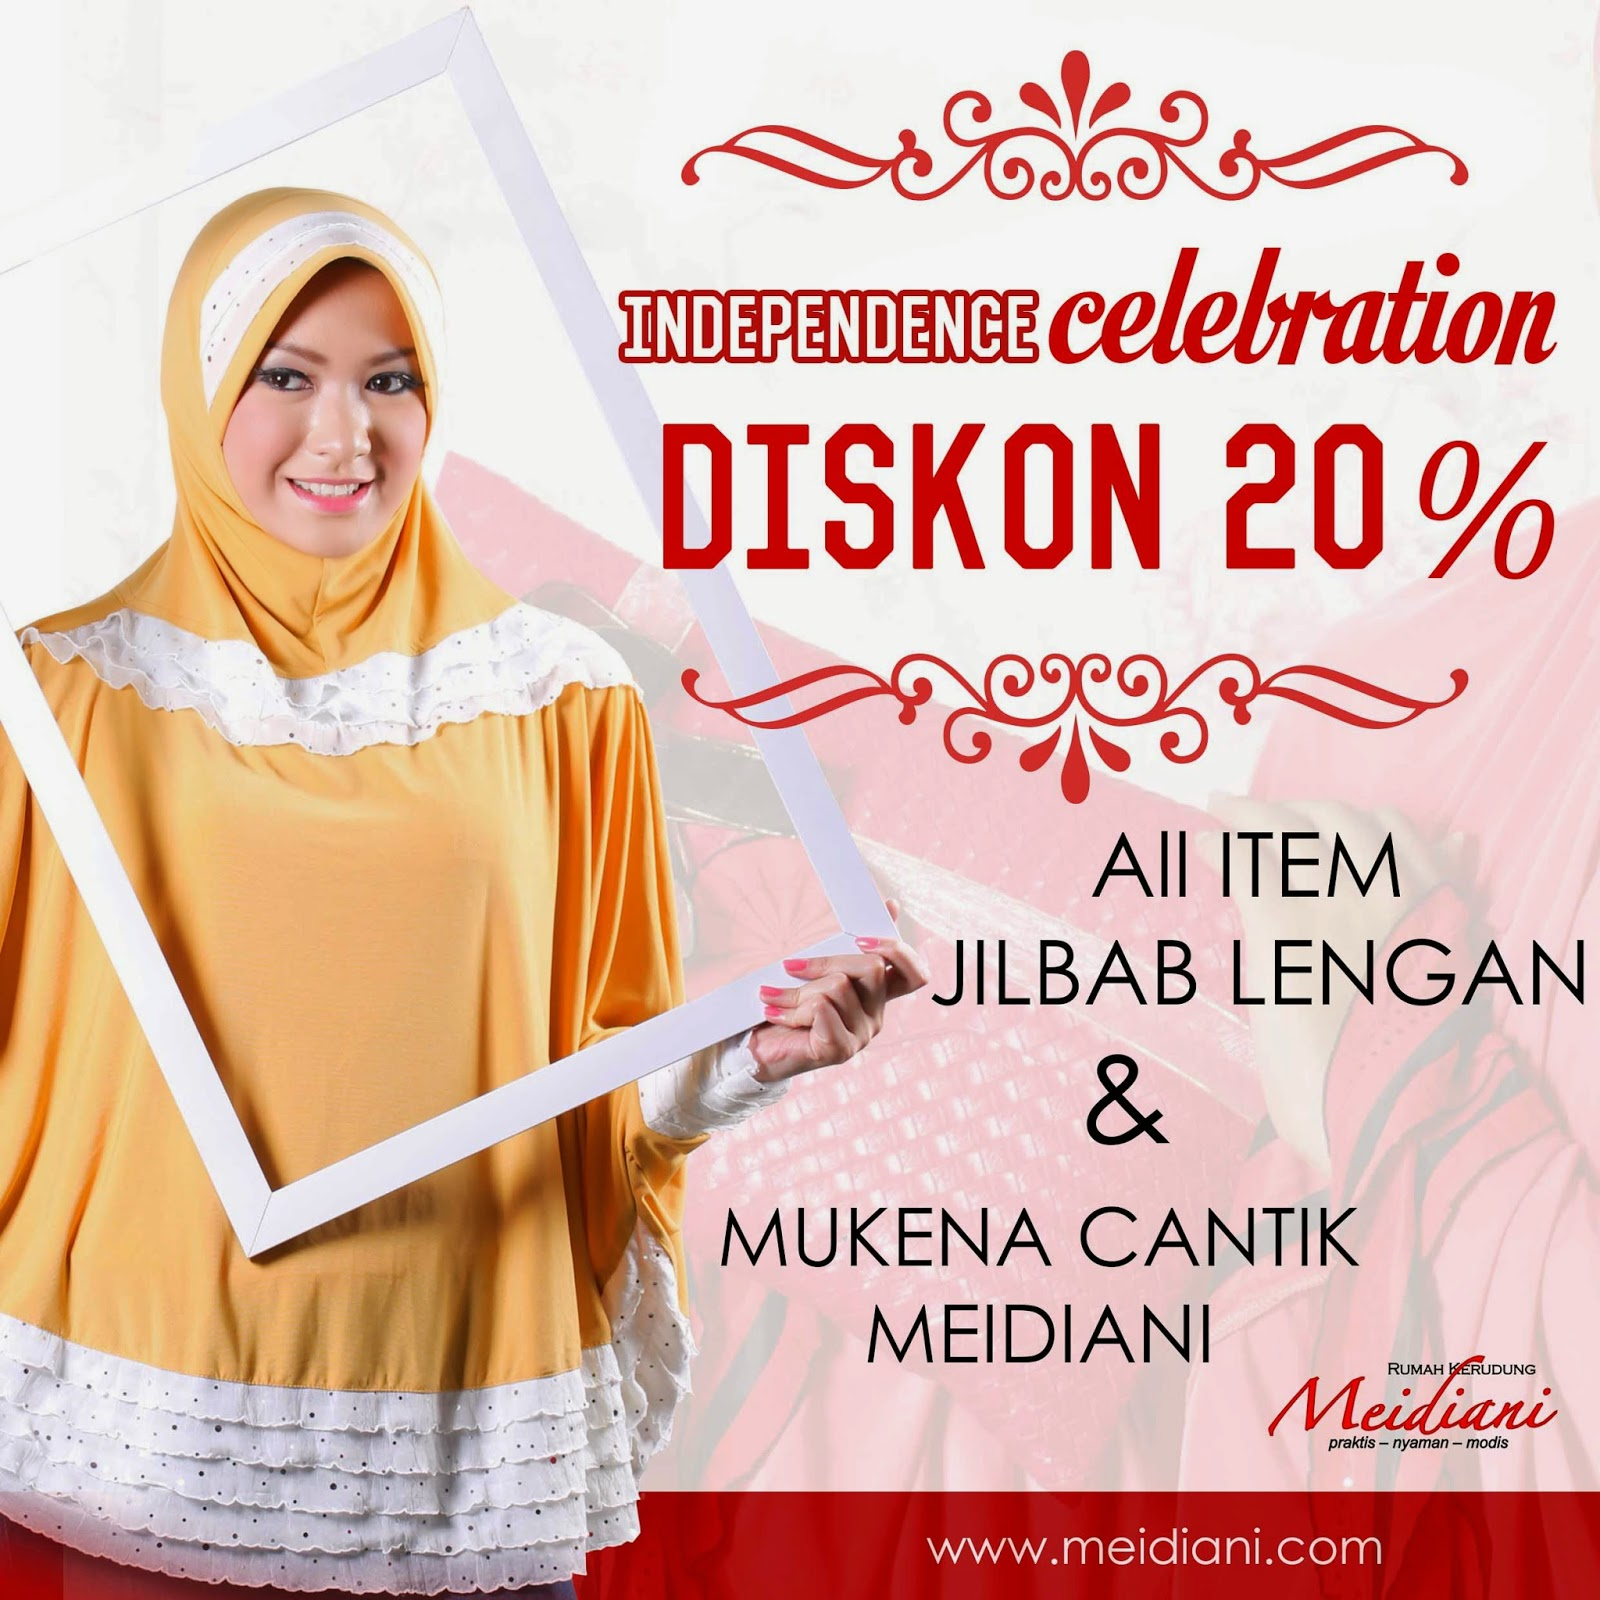 Independence celebration diskon 20%